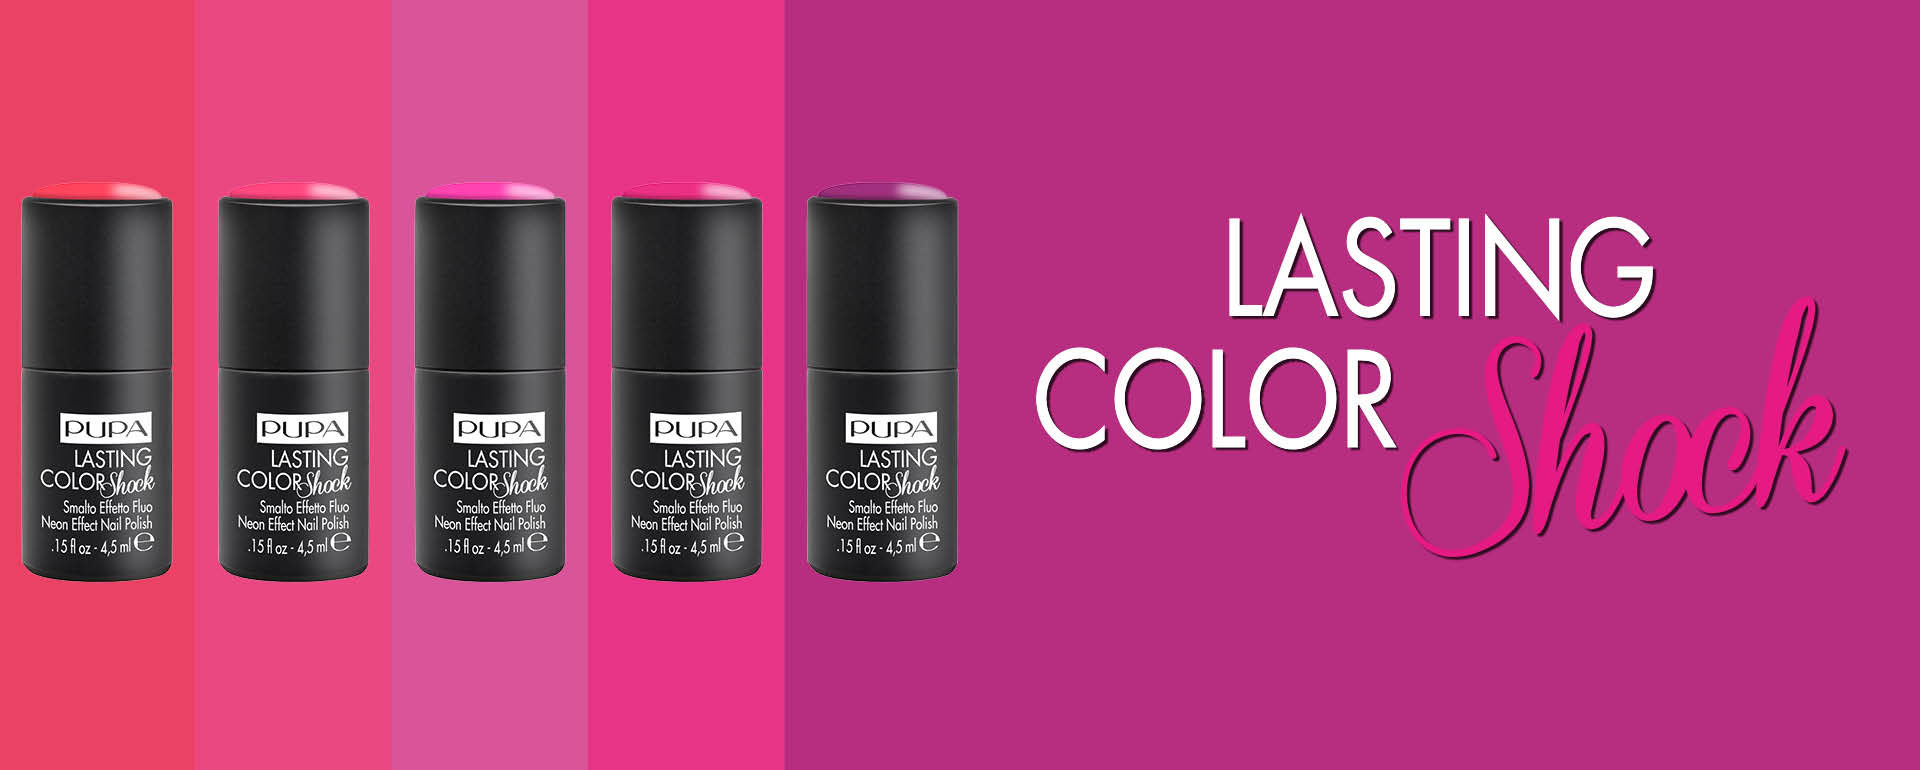 Lasting Color Shock